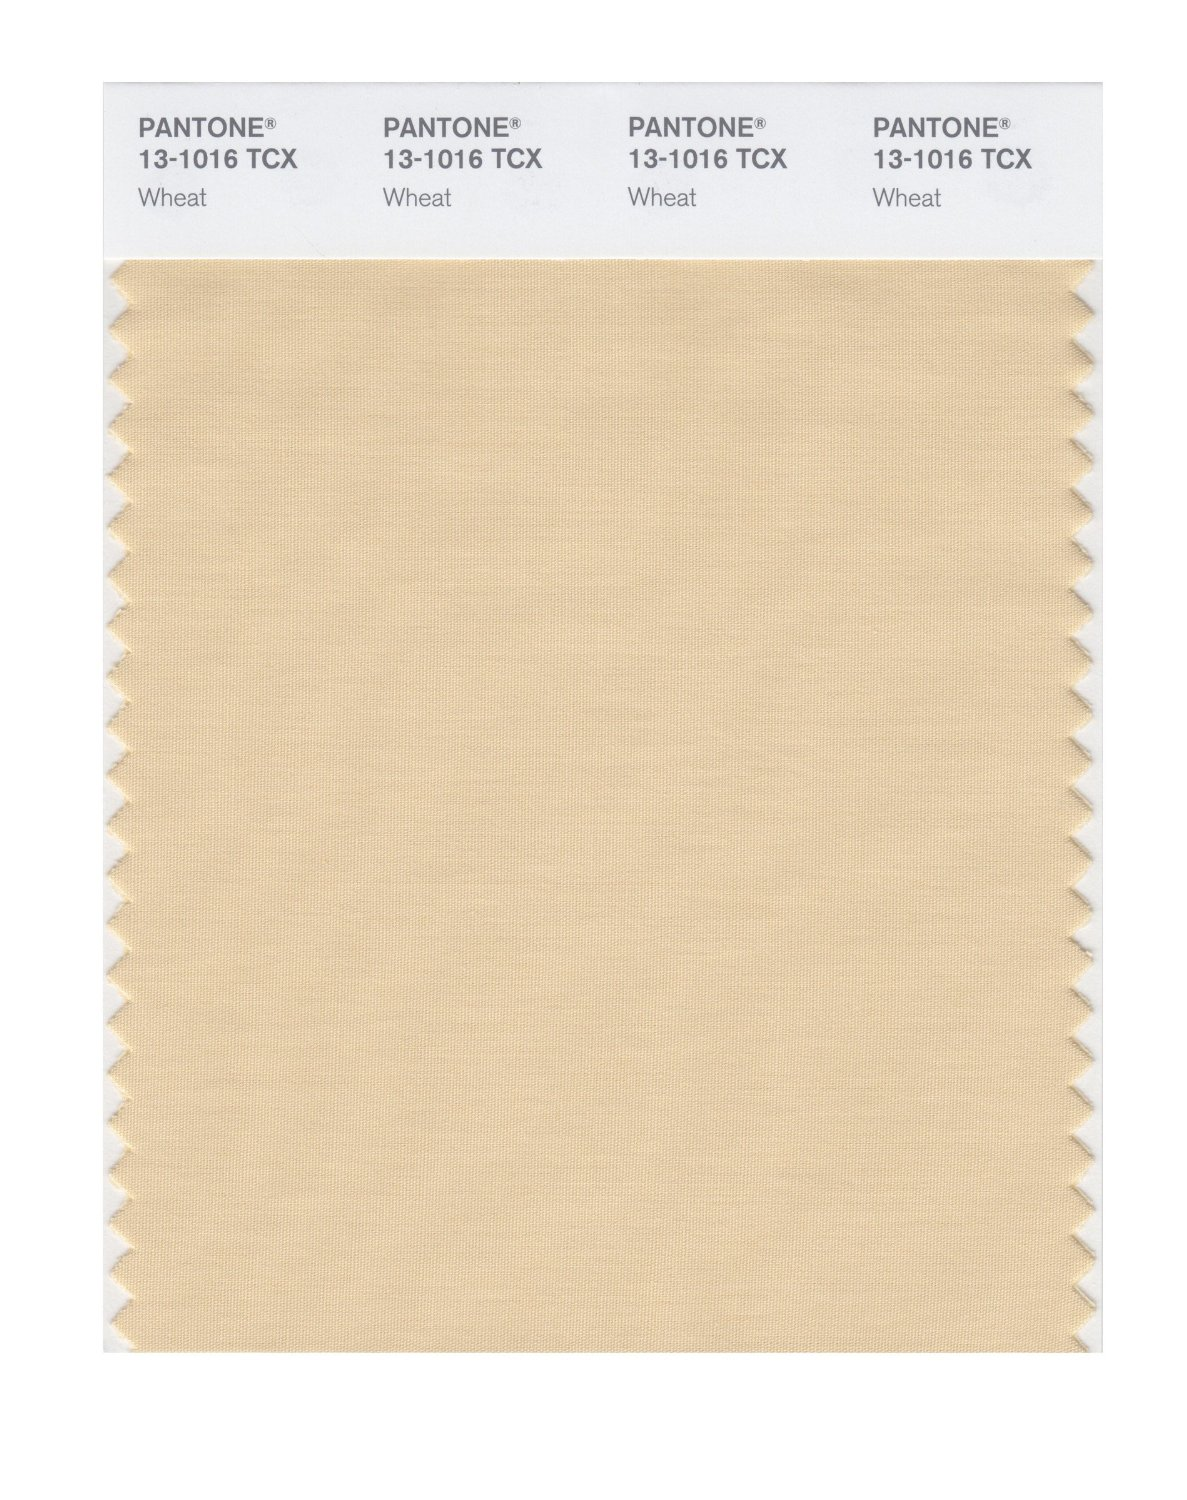 Pantone Smart Swatch 13-1016 Wheat